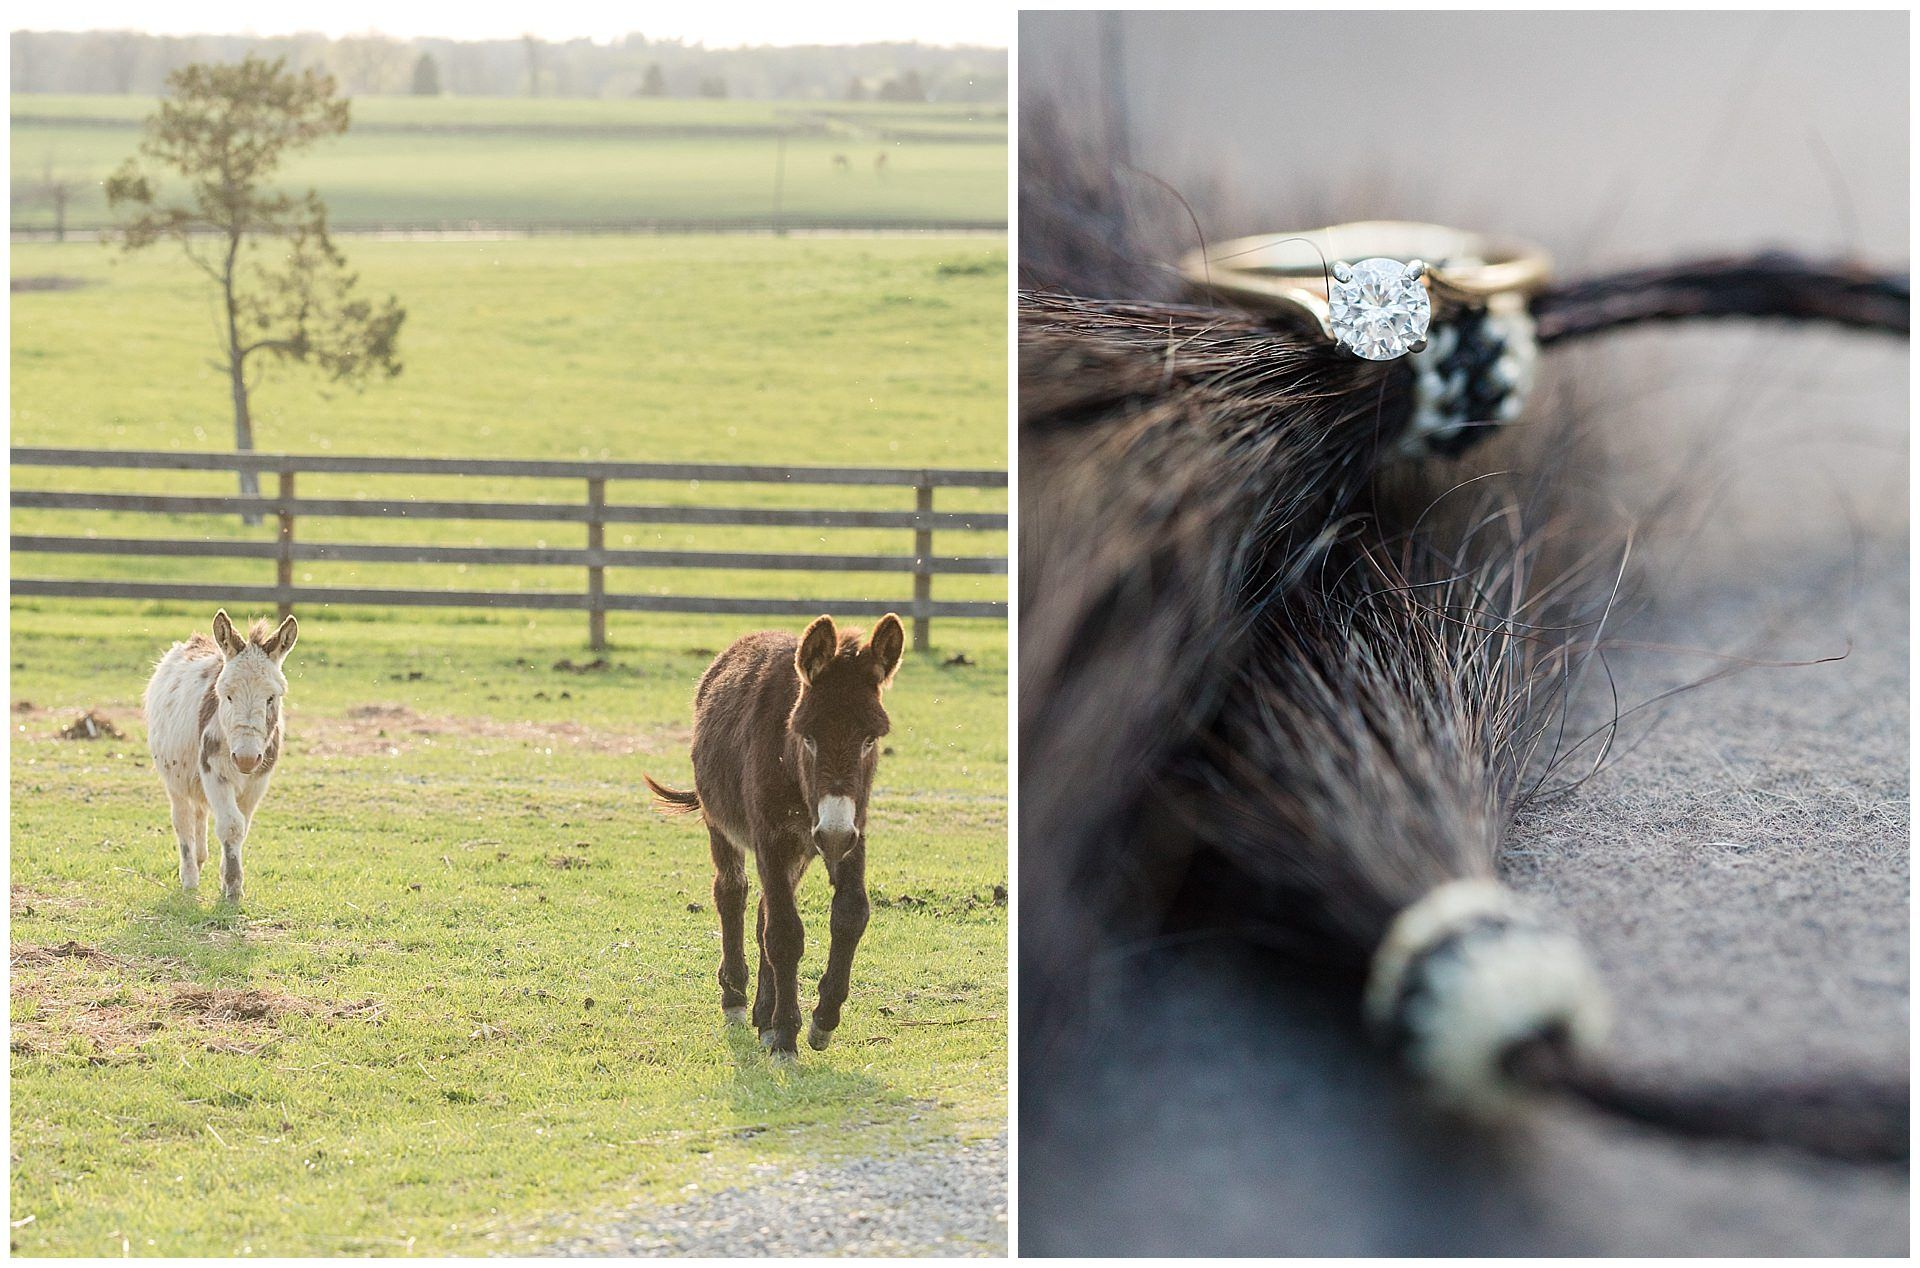 Spring Engagement Session On A Horse Farm in Lexington, KY. Kentucky Wedding Photographer, Lexington Kentucky Wedding Photographer, Farm Engagement, Cowboy Engagement, Horse Farm, Romantic, Donkeys, Ring, Diamond, Engagement Ring. Kevin and Anna Photography www.kevinandannaweddings.com